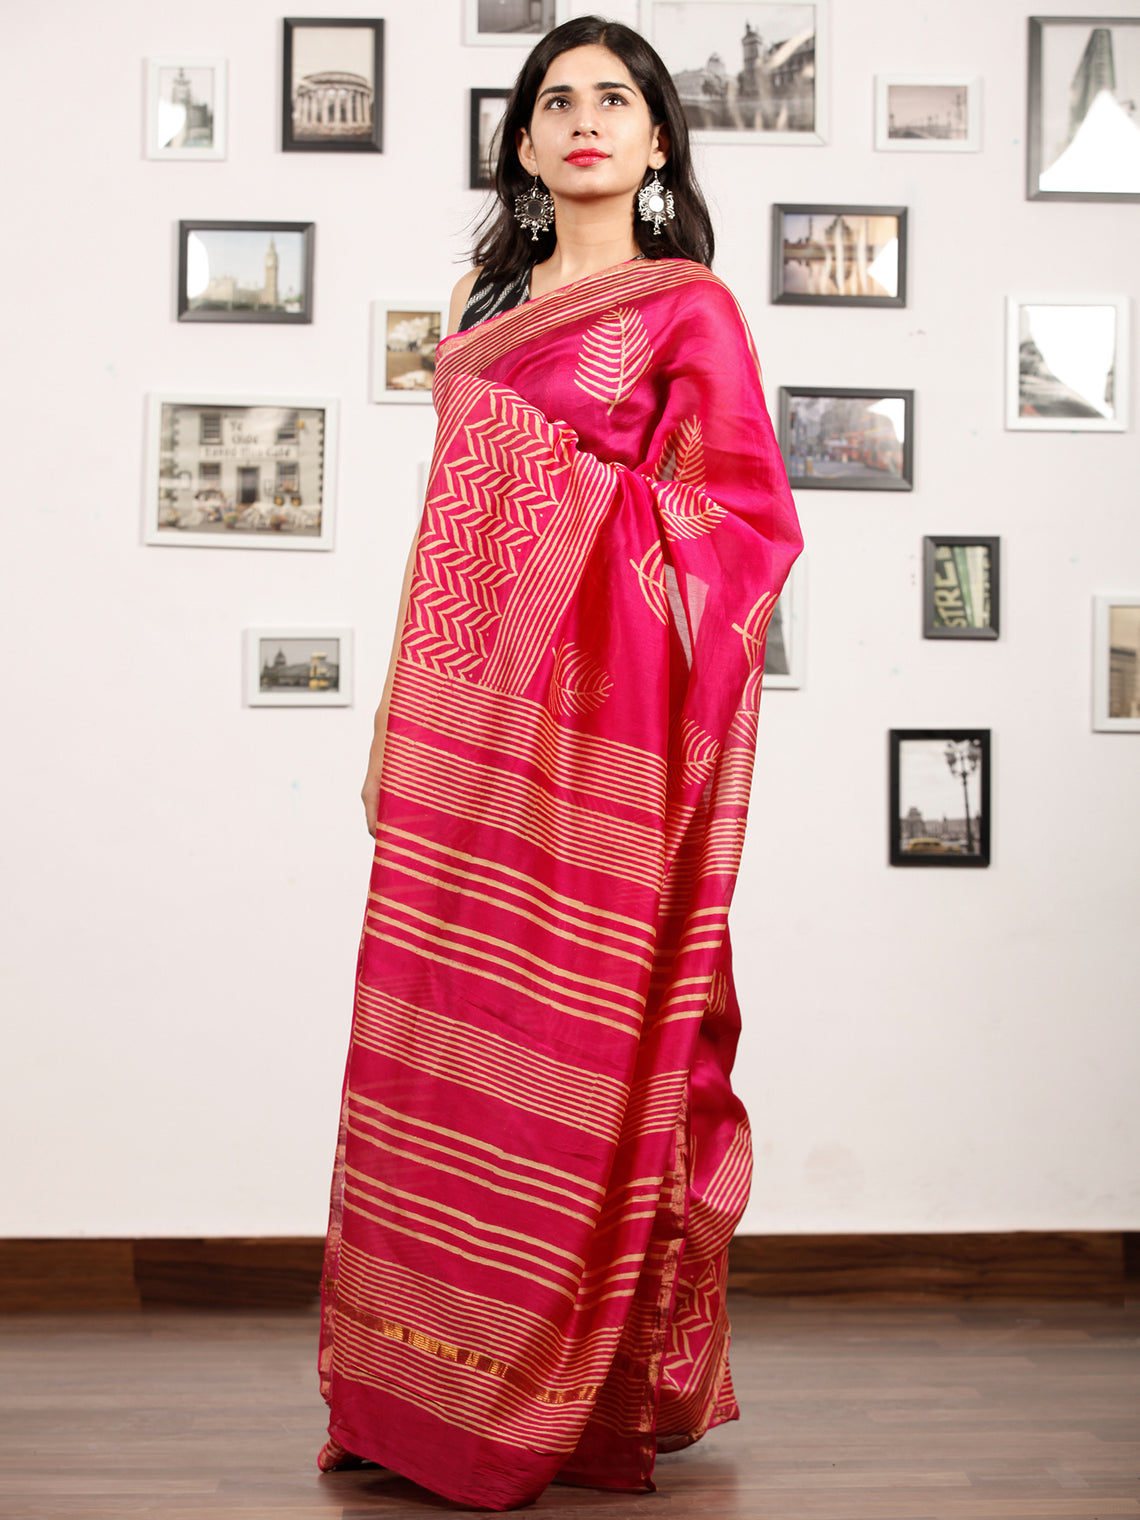 Pink Beige Chanderi Silk Hand Block Printed Saree With Zari Border - S031703187